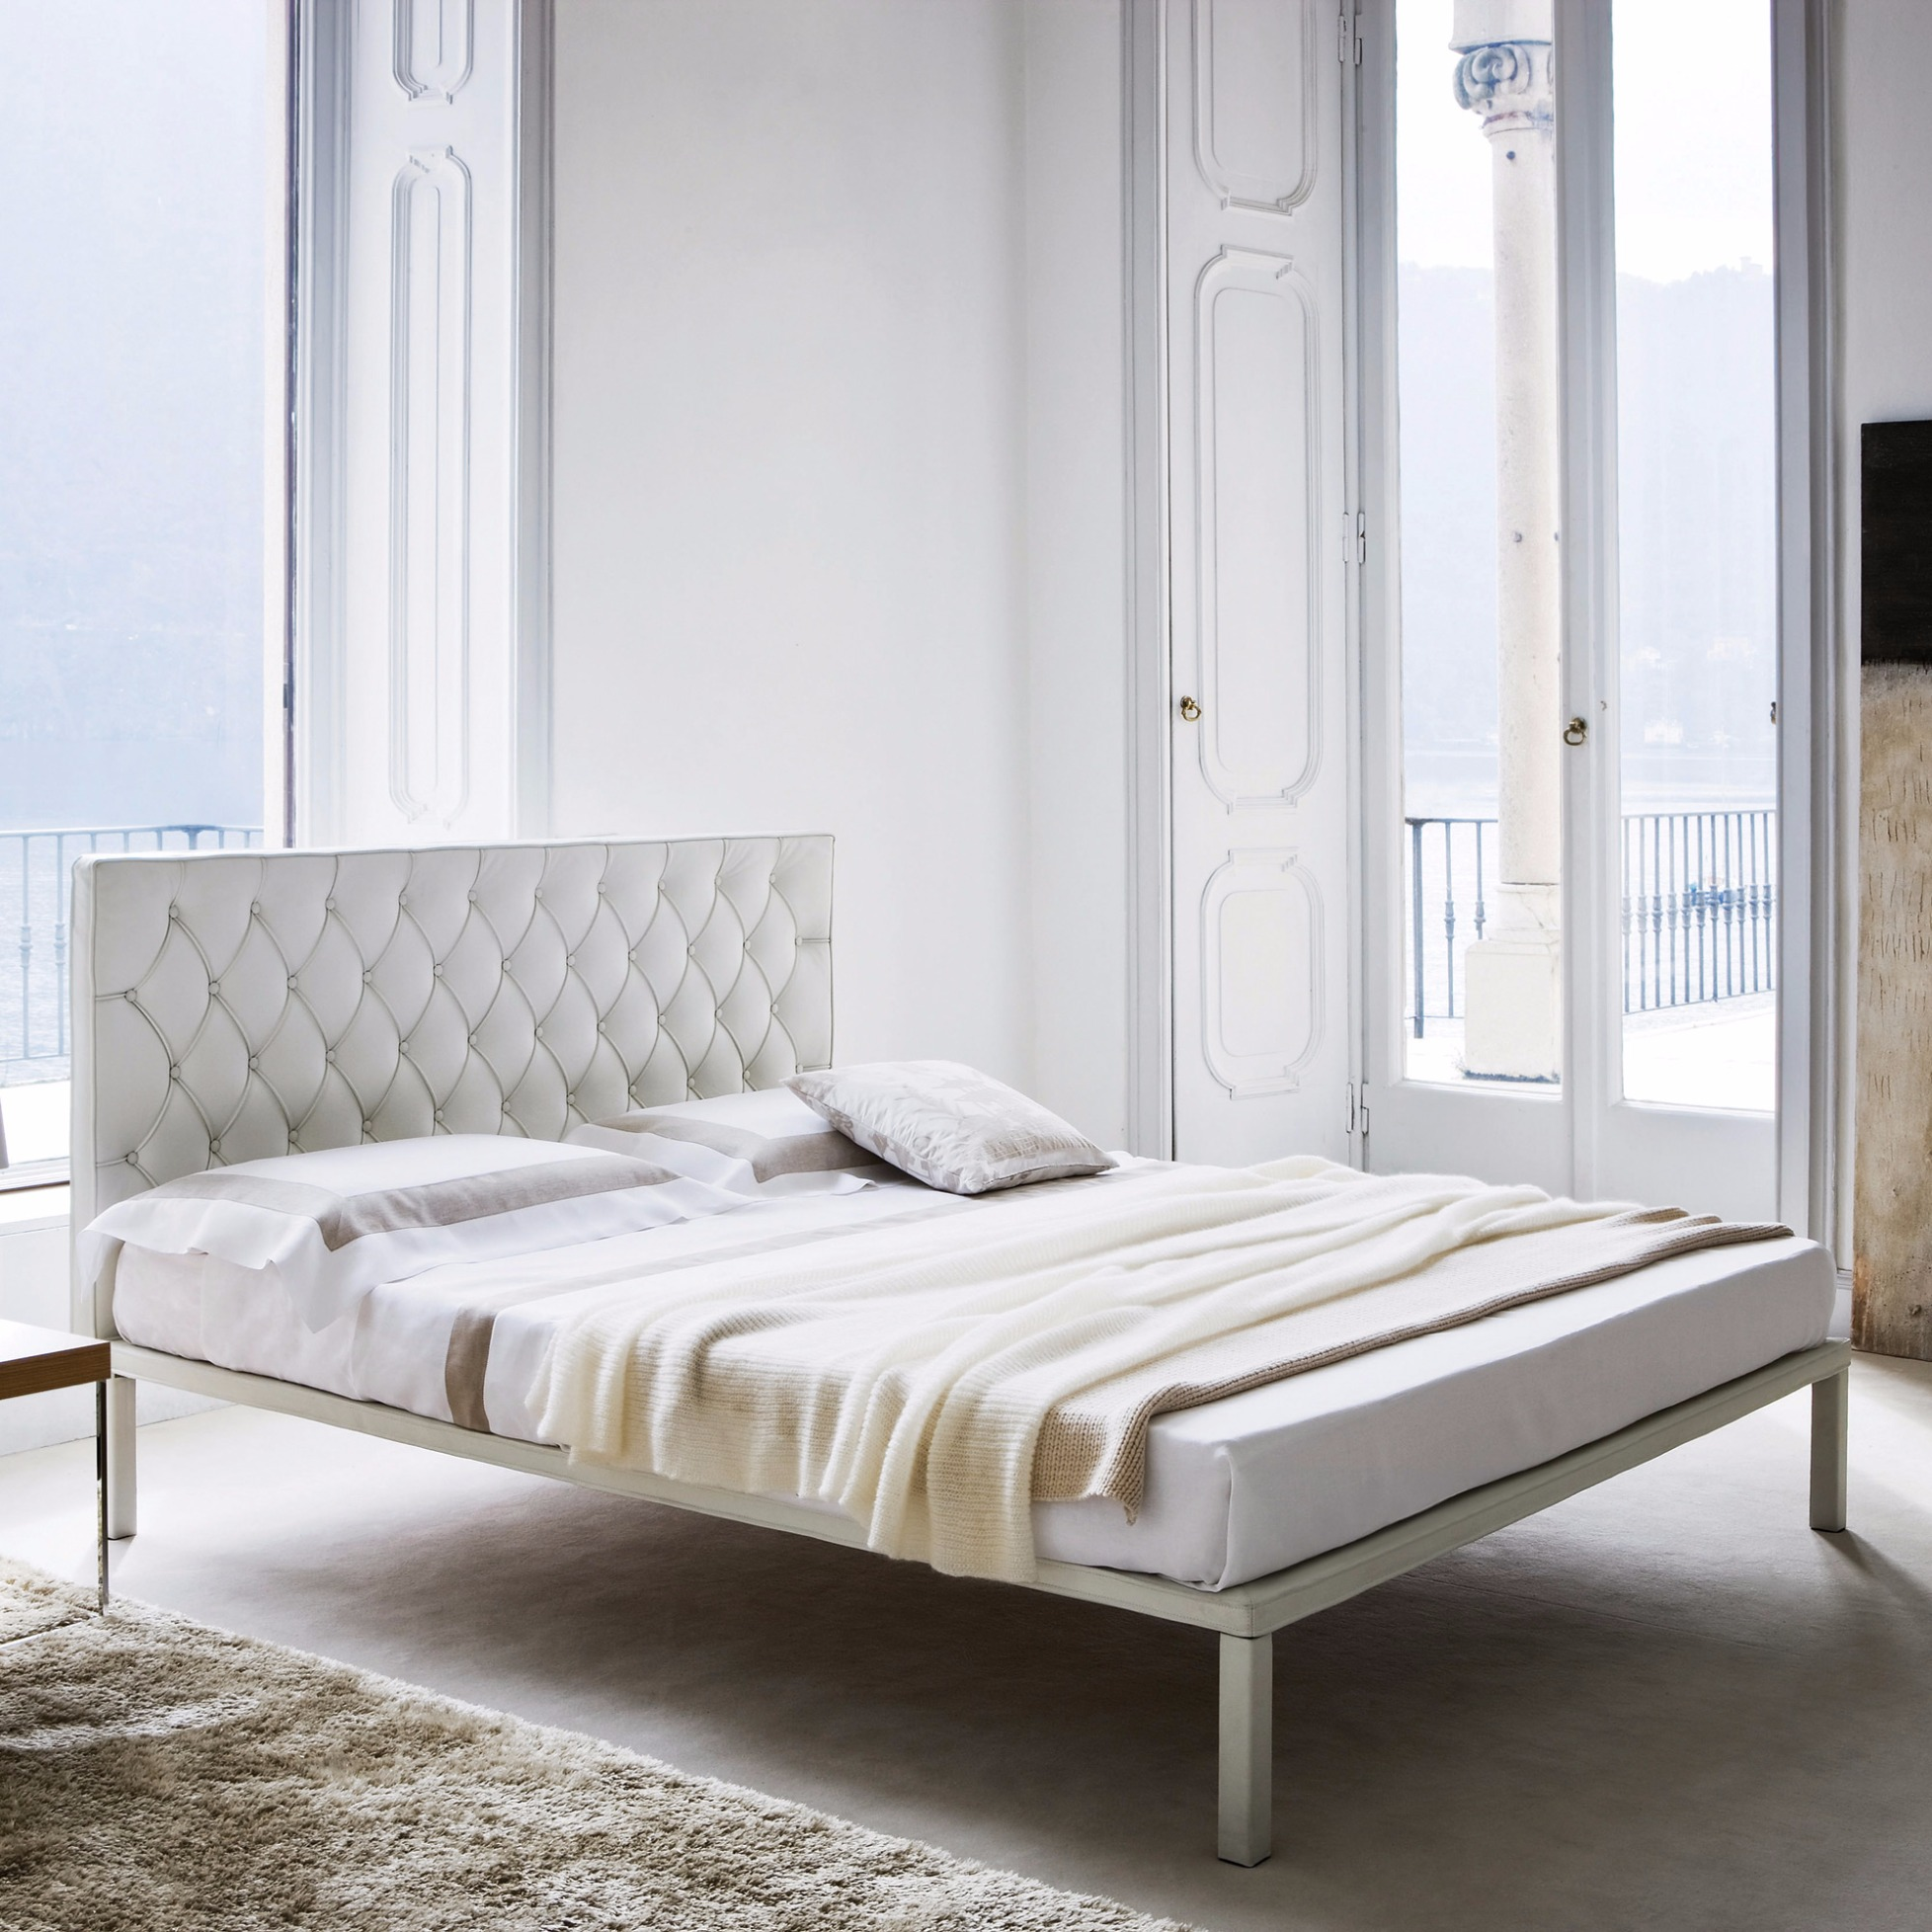 Lederbetten 200x200 Leather Bed Caracalla By Zanotta